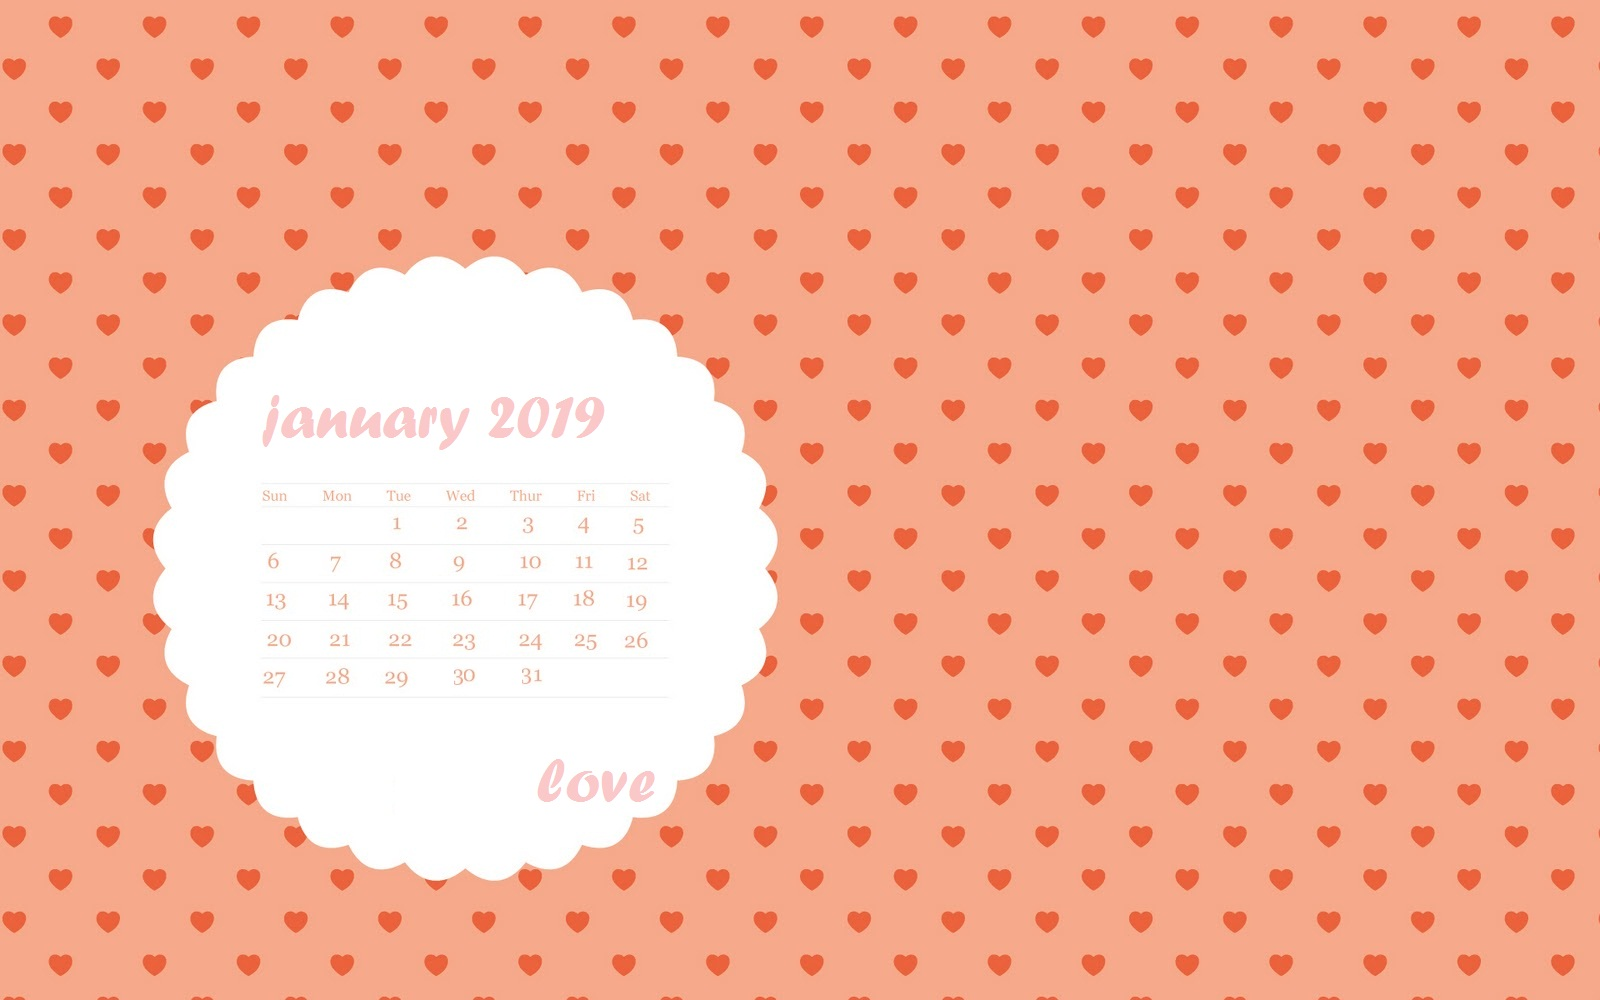 Heart Love January 2019 Desktop Calendar